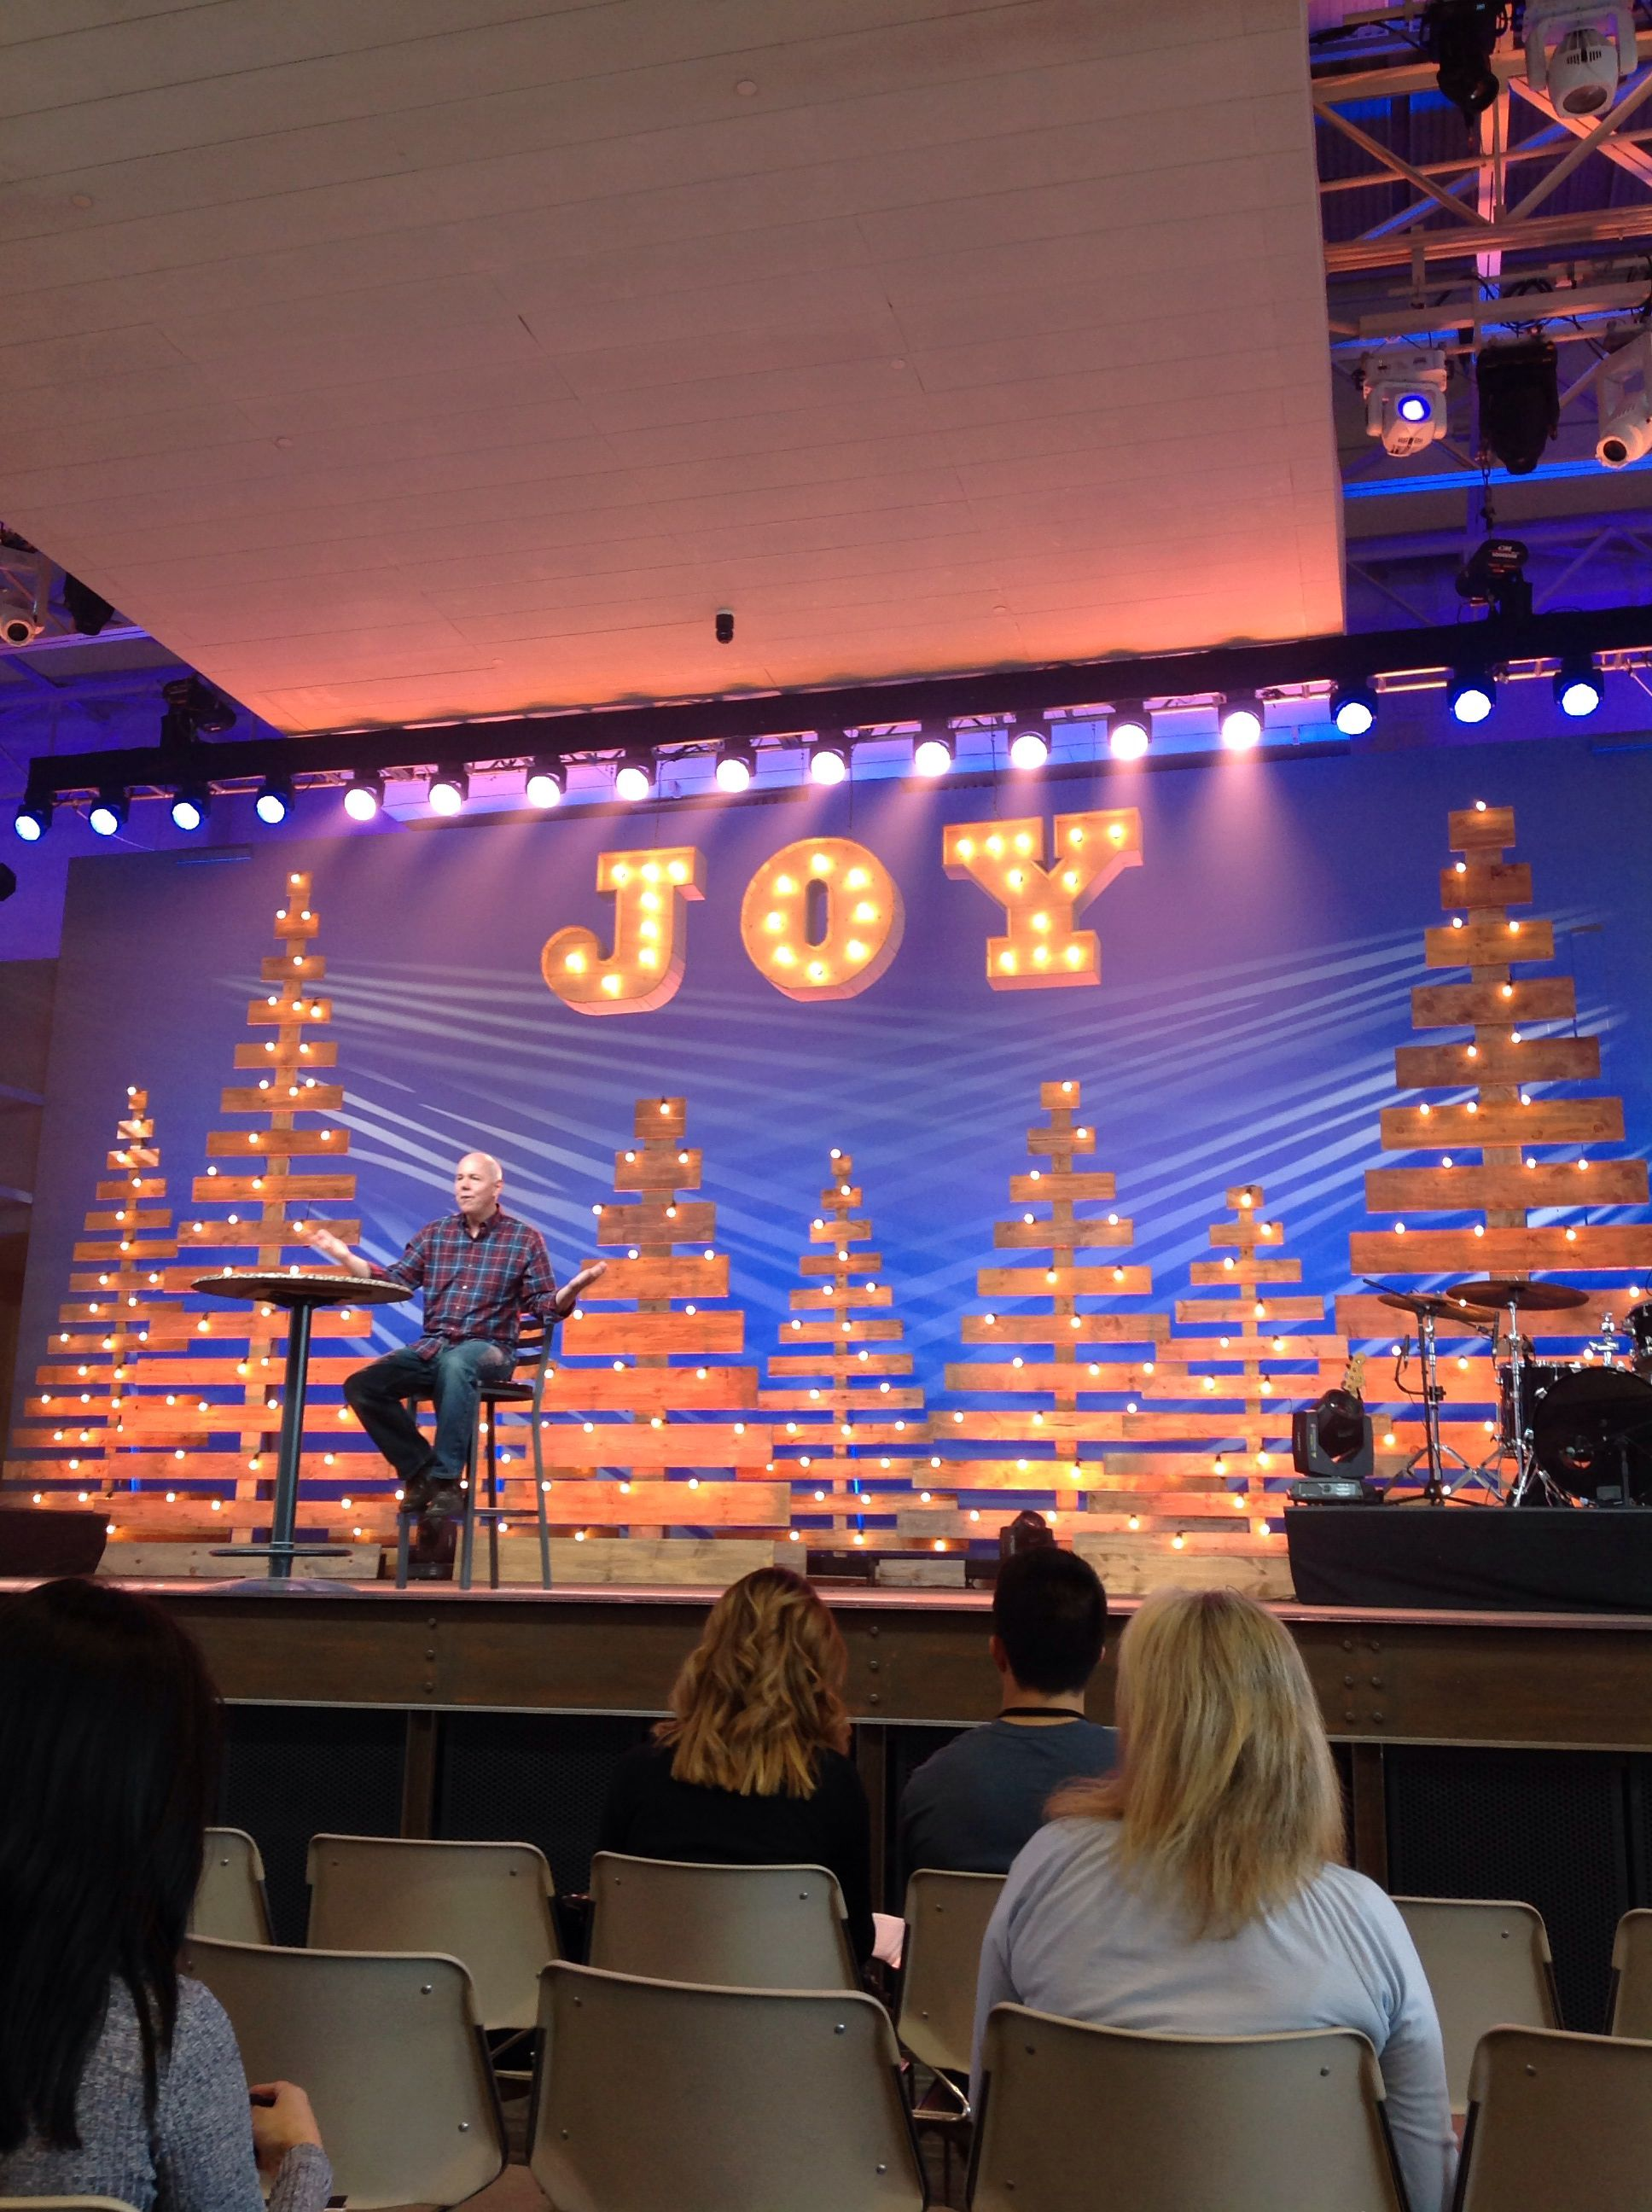 pastor tom halladay teaching us about joy during the christmas season saddleback church lake forest campus - Christmas Stage Decorations